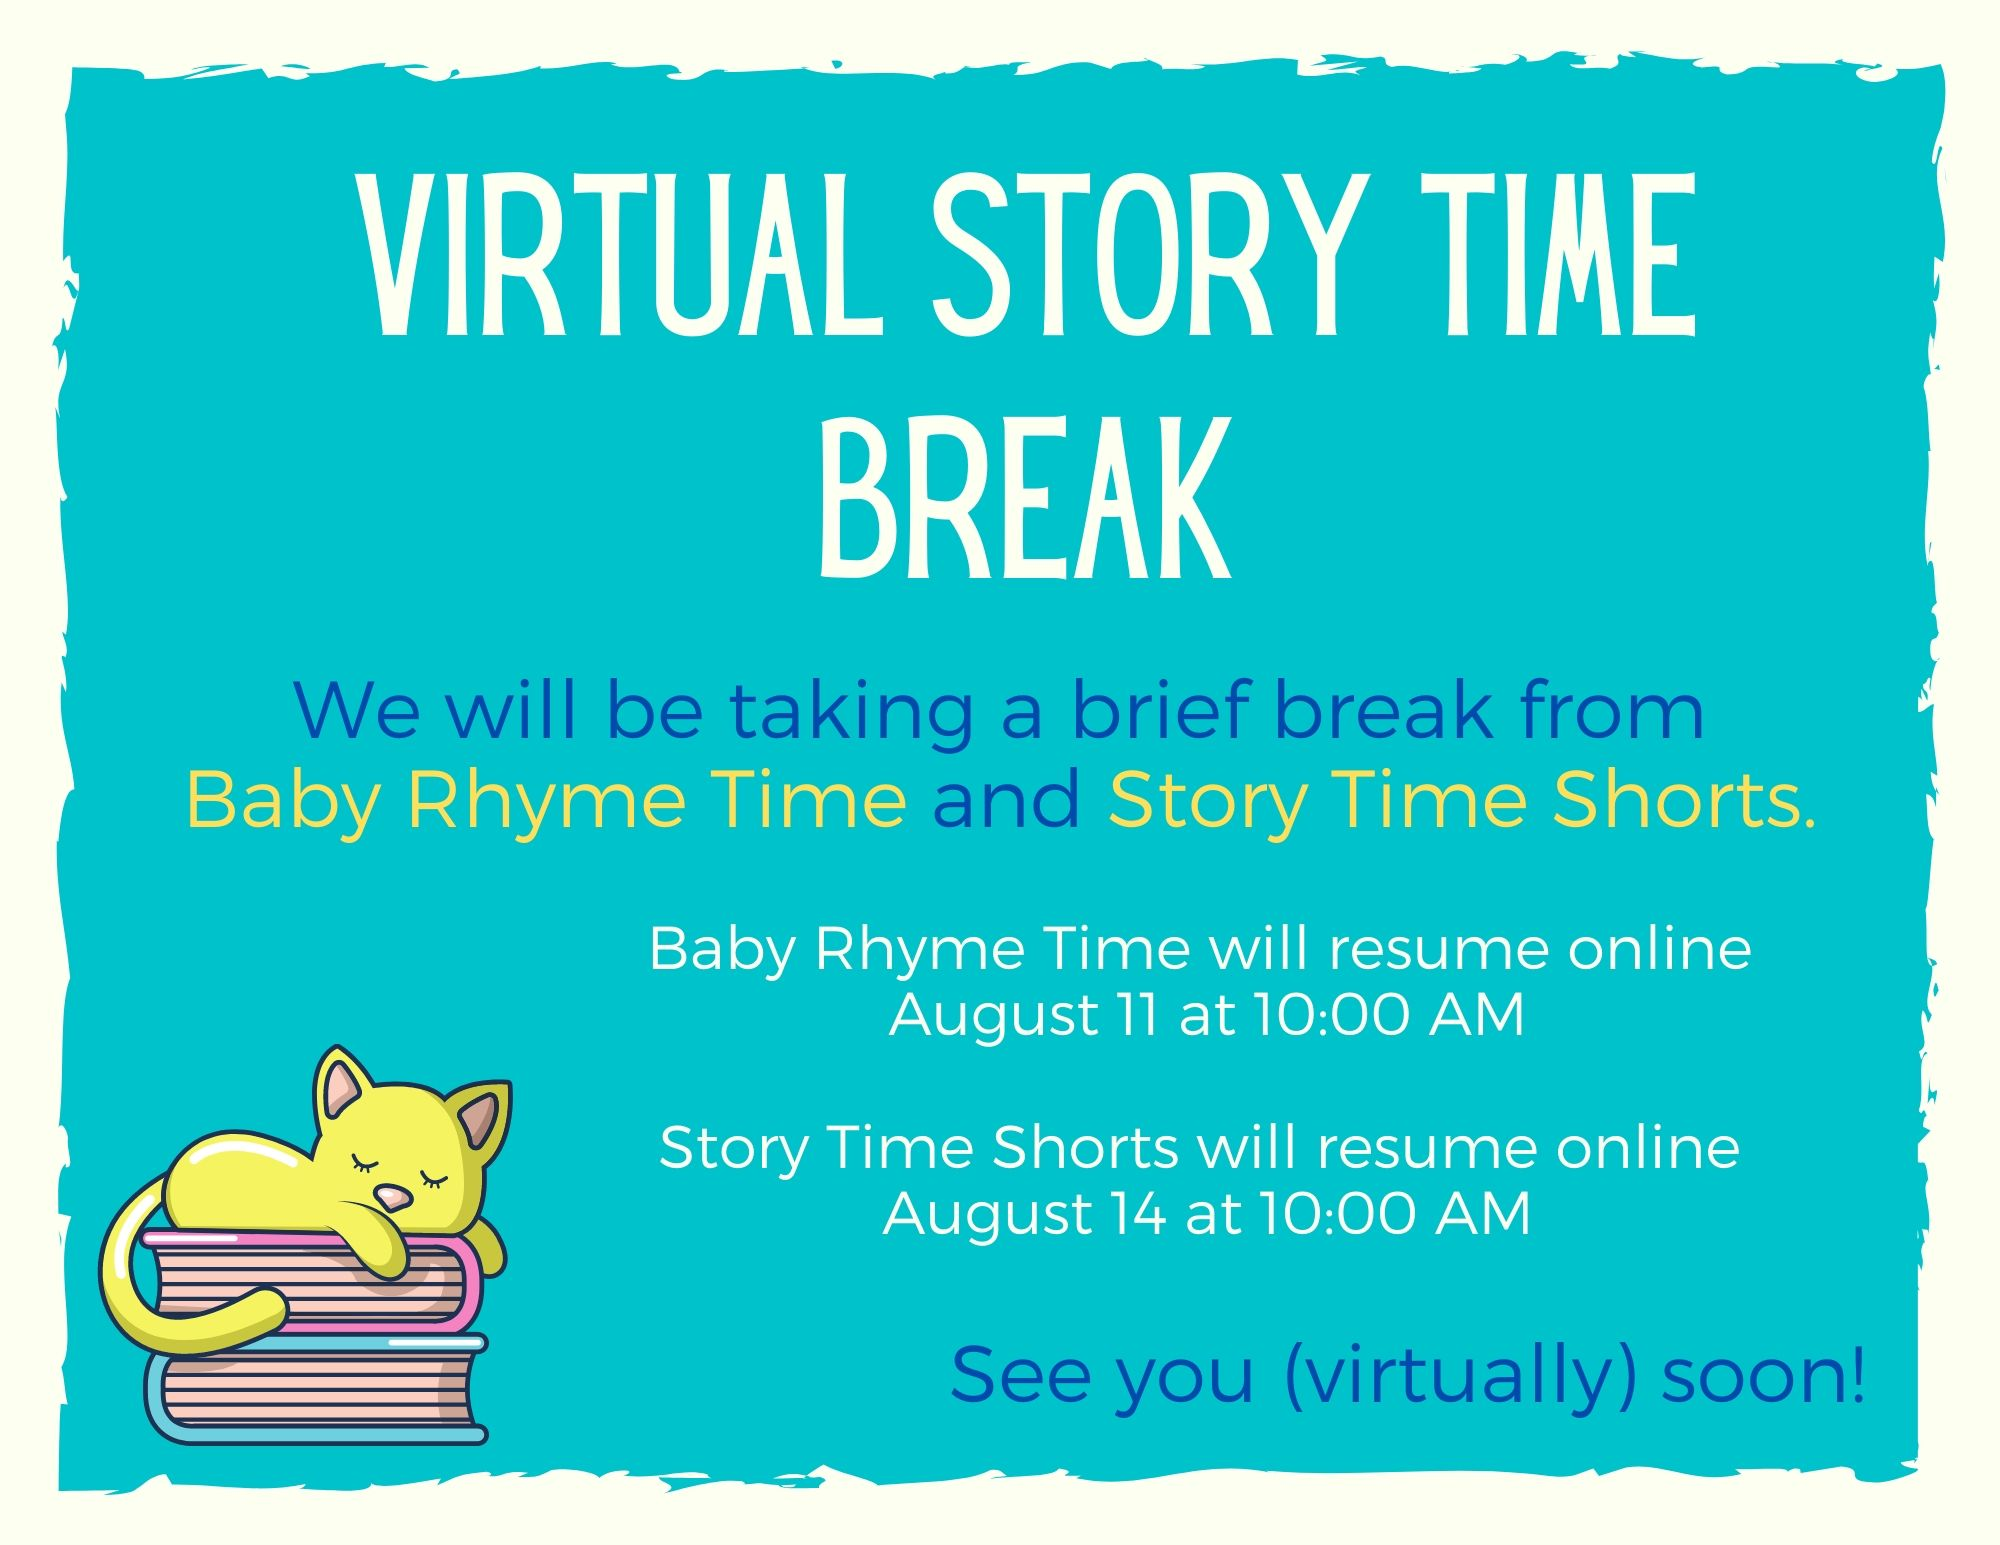 We will be taking a brief break from Baby Rhyme Time and Story Time Shorts. Baby Rhyme Time will resume online  August 11 at 10:00 AM  Story Time Shorts will resume online  August 14 at 10:00 AM